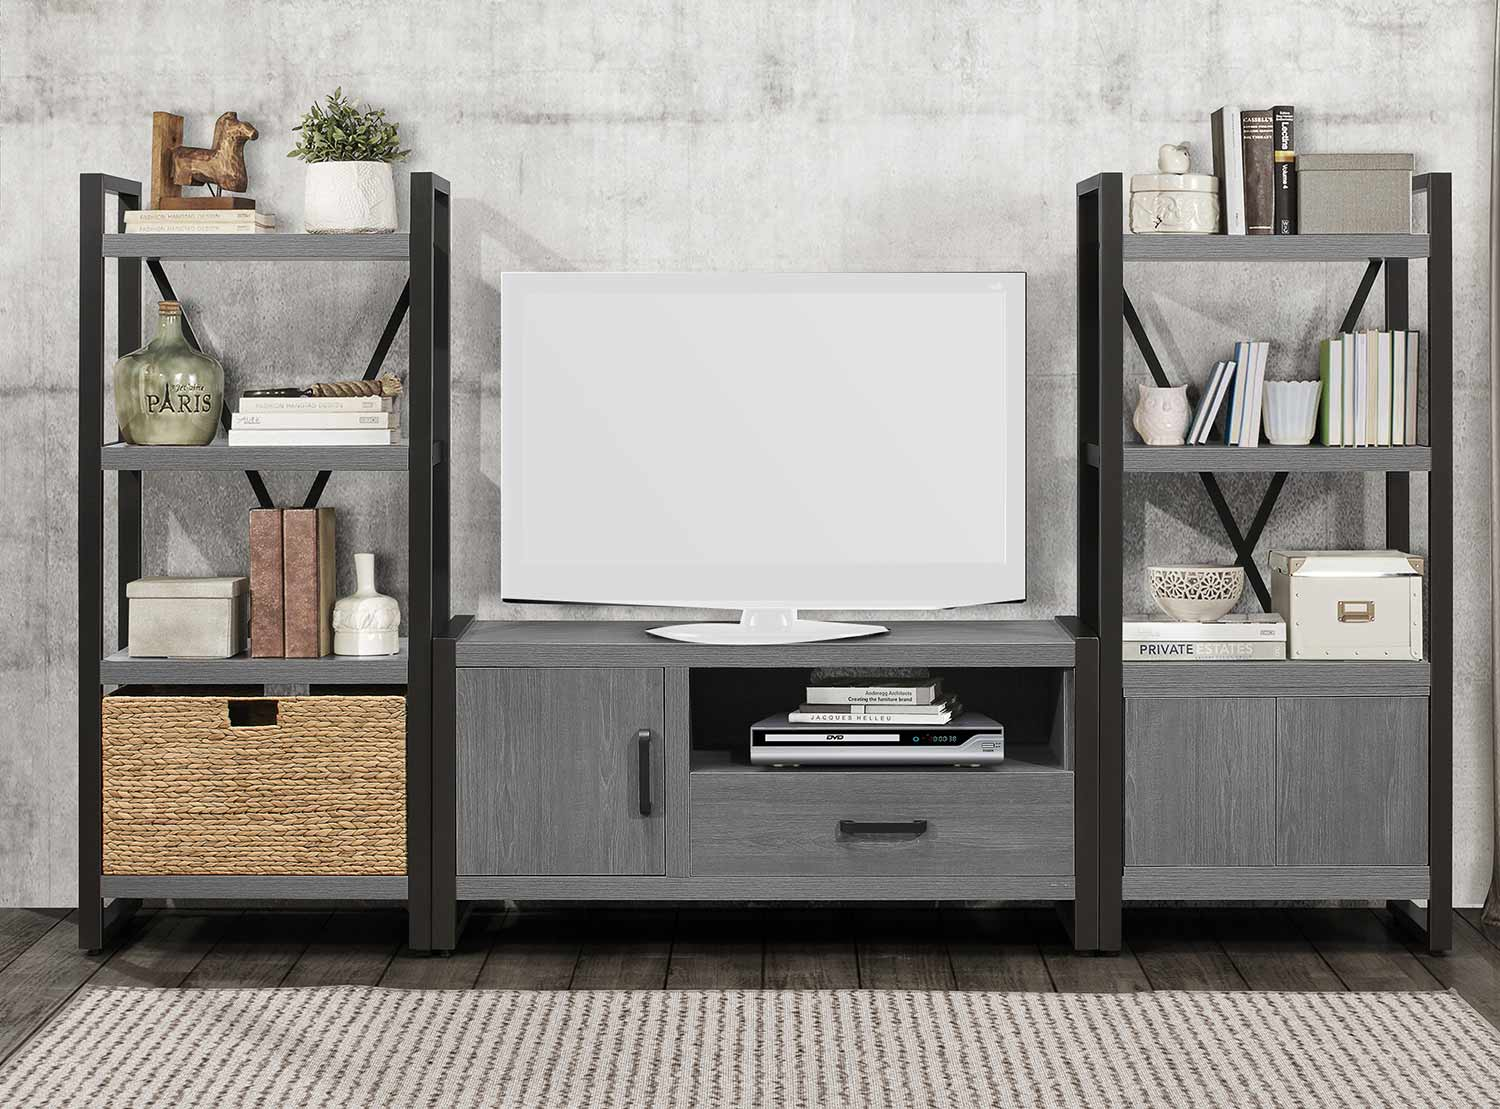 Homelegance Dogue 51-inch Entertainment Center Set - Gunmetal - Gray